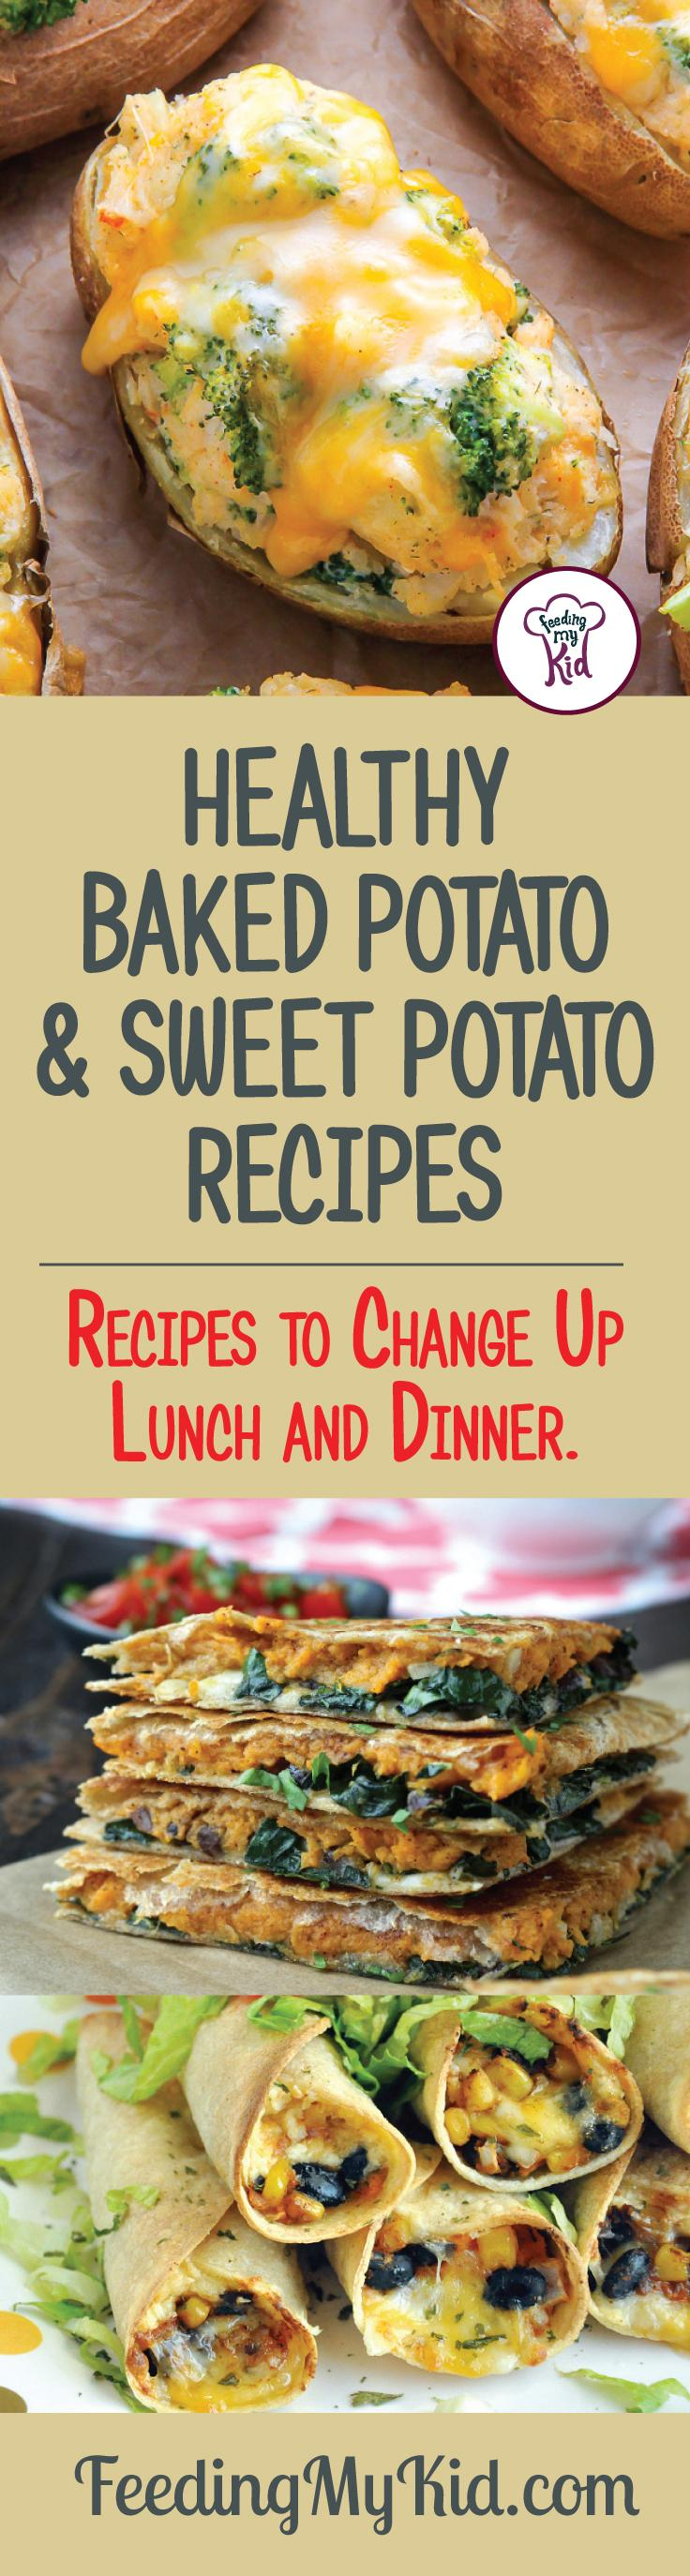 Try these great baked potato and sweet potato recipes that will make the perfect side dish for just about any and every meal! Feeding My Kid is a filled with all the information you need about how to raise your kids, from healthy tips to nutritious recipes. #FeedingMyKid #potatorecipes